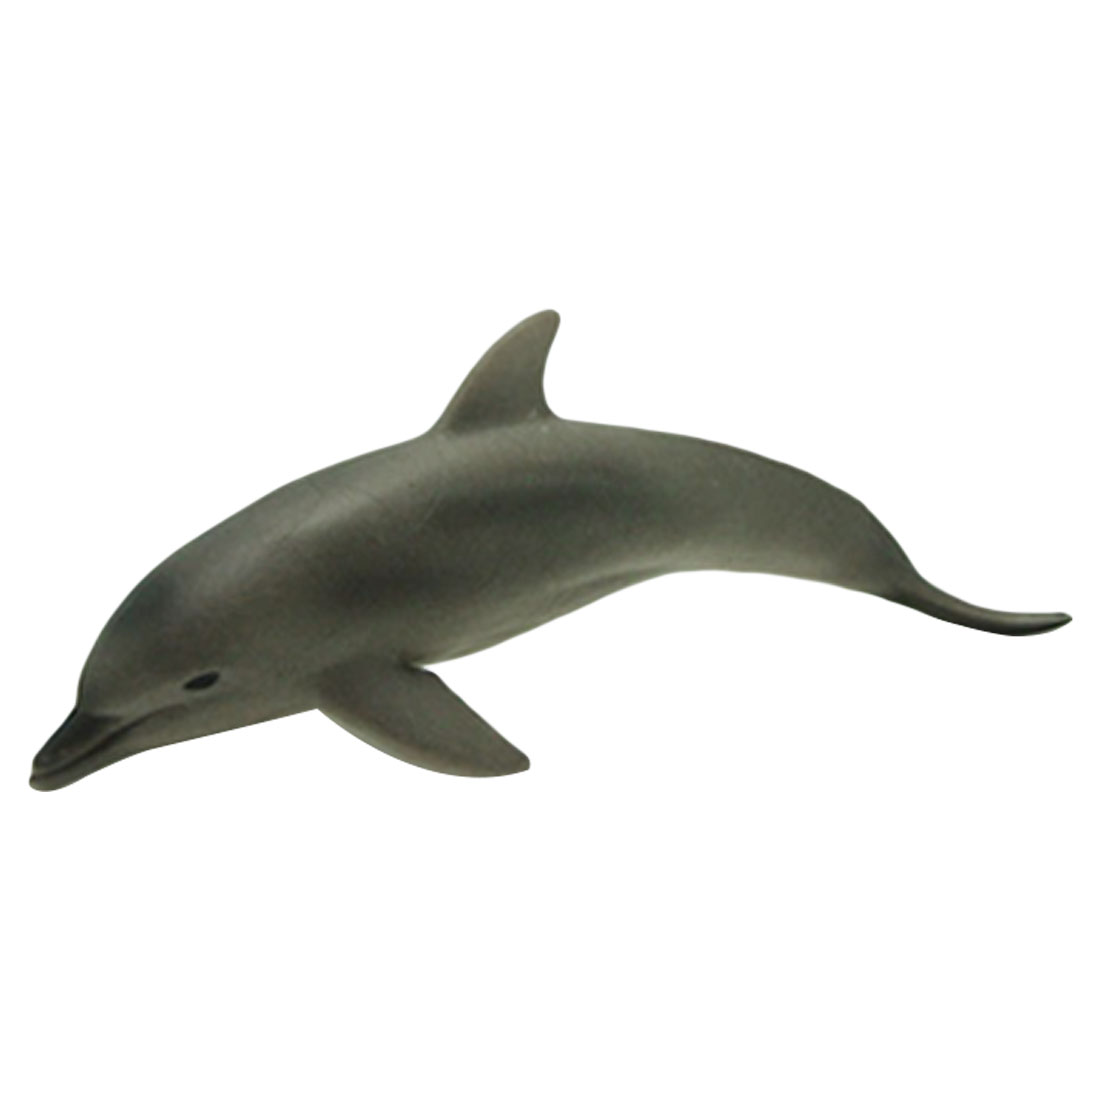 Marine organism animals models figurines toys Simulation Sea Dogs turtle Skate Dolphin Octopus Flying fish Toy Gift For Children in Stuffed Plush Animals from Toys Hobbies